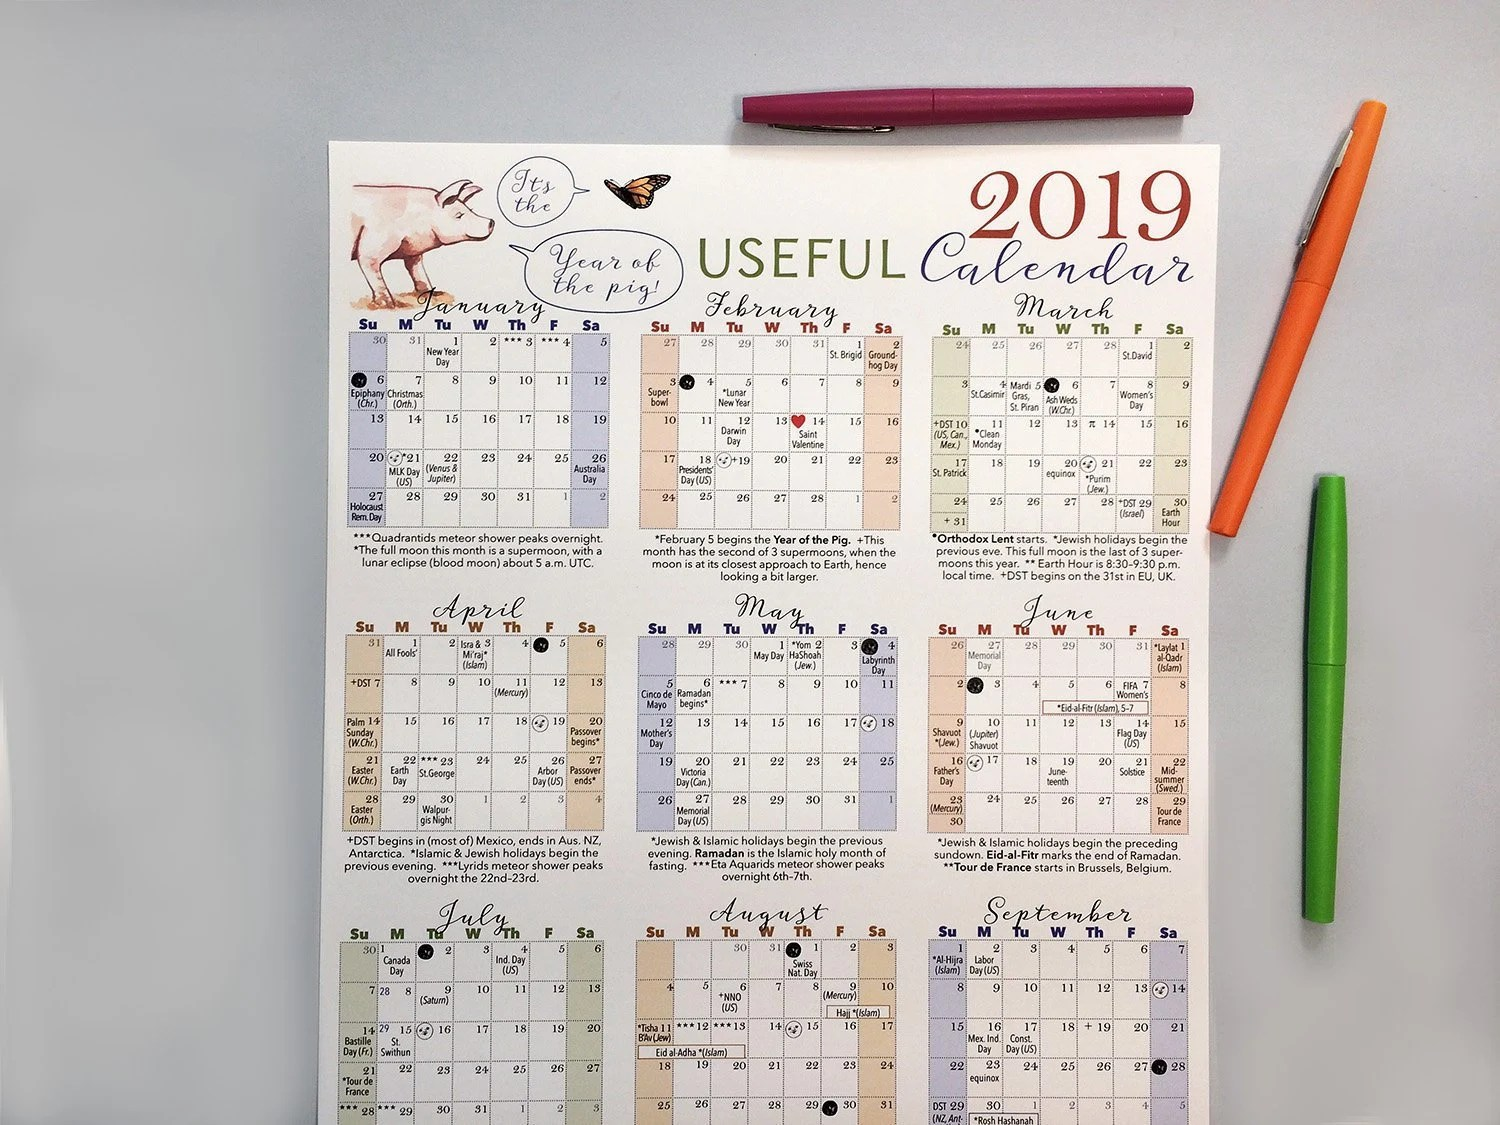 2019 wall calendar Full year calendar on one page with major Etsy